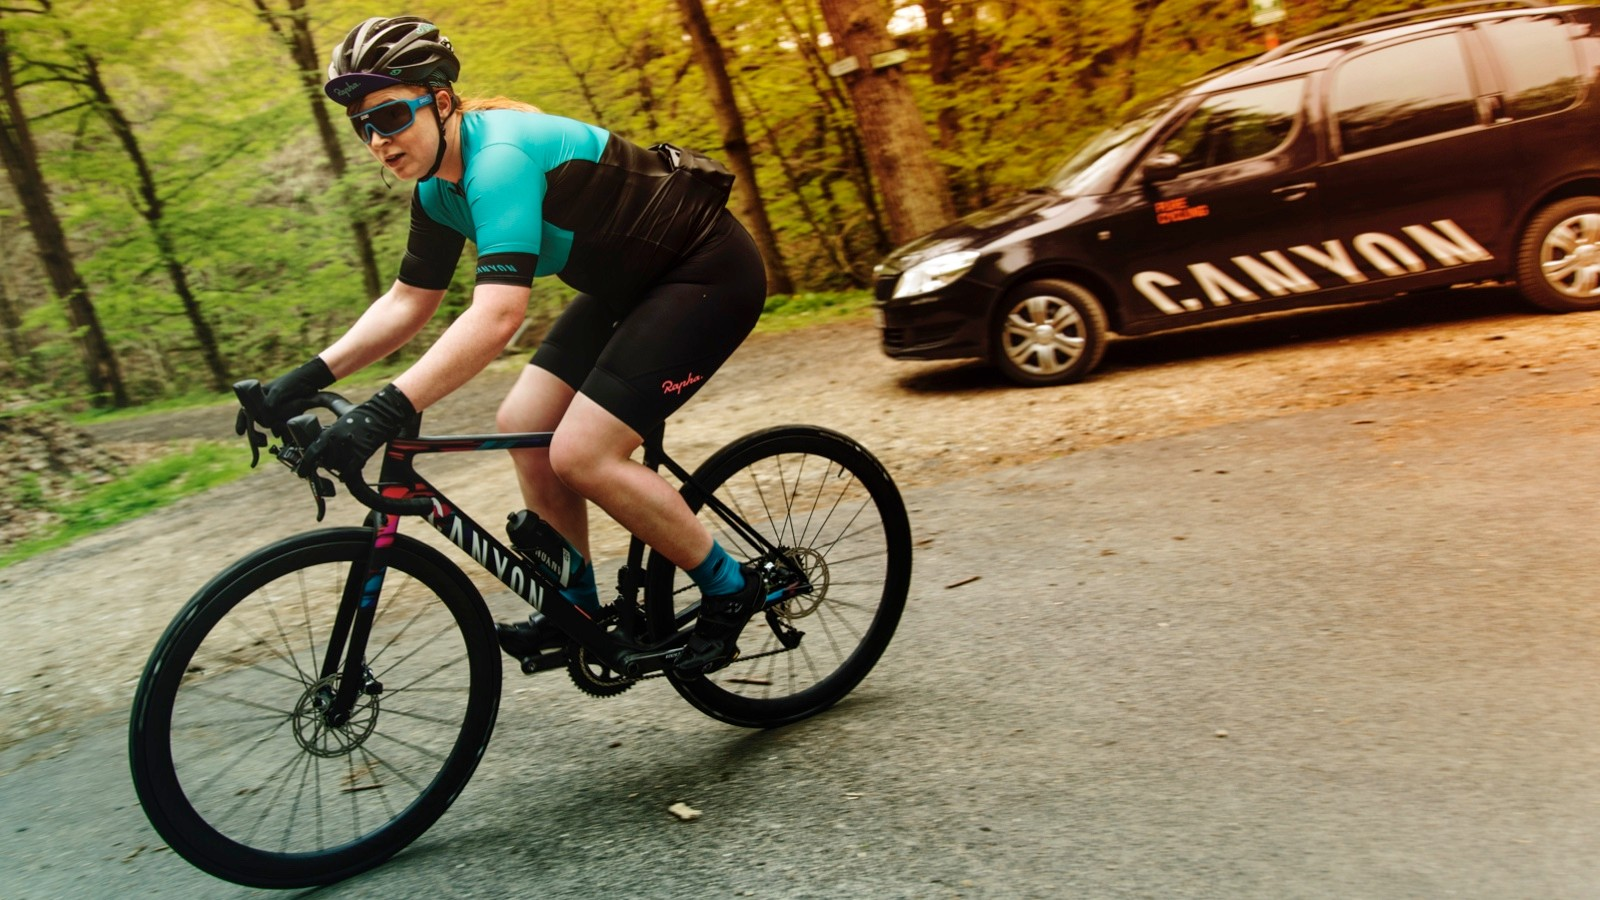 Introducing the newly women's specific Ultimate WMN from Canyon